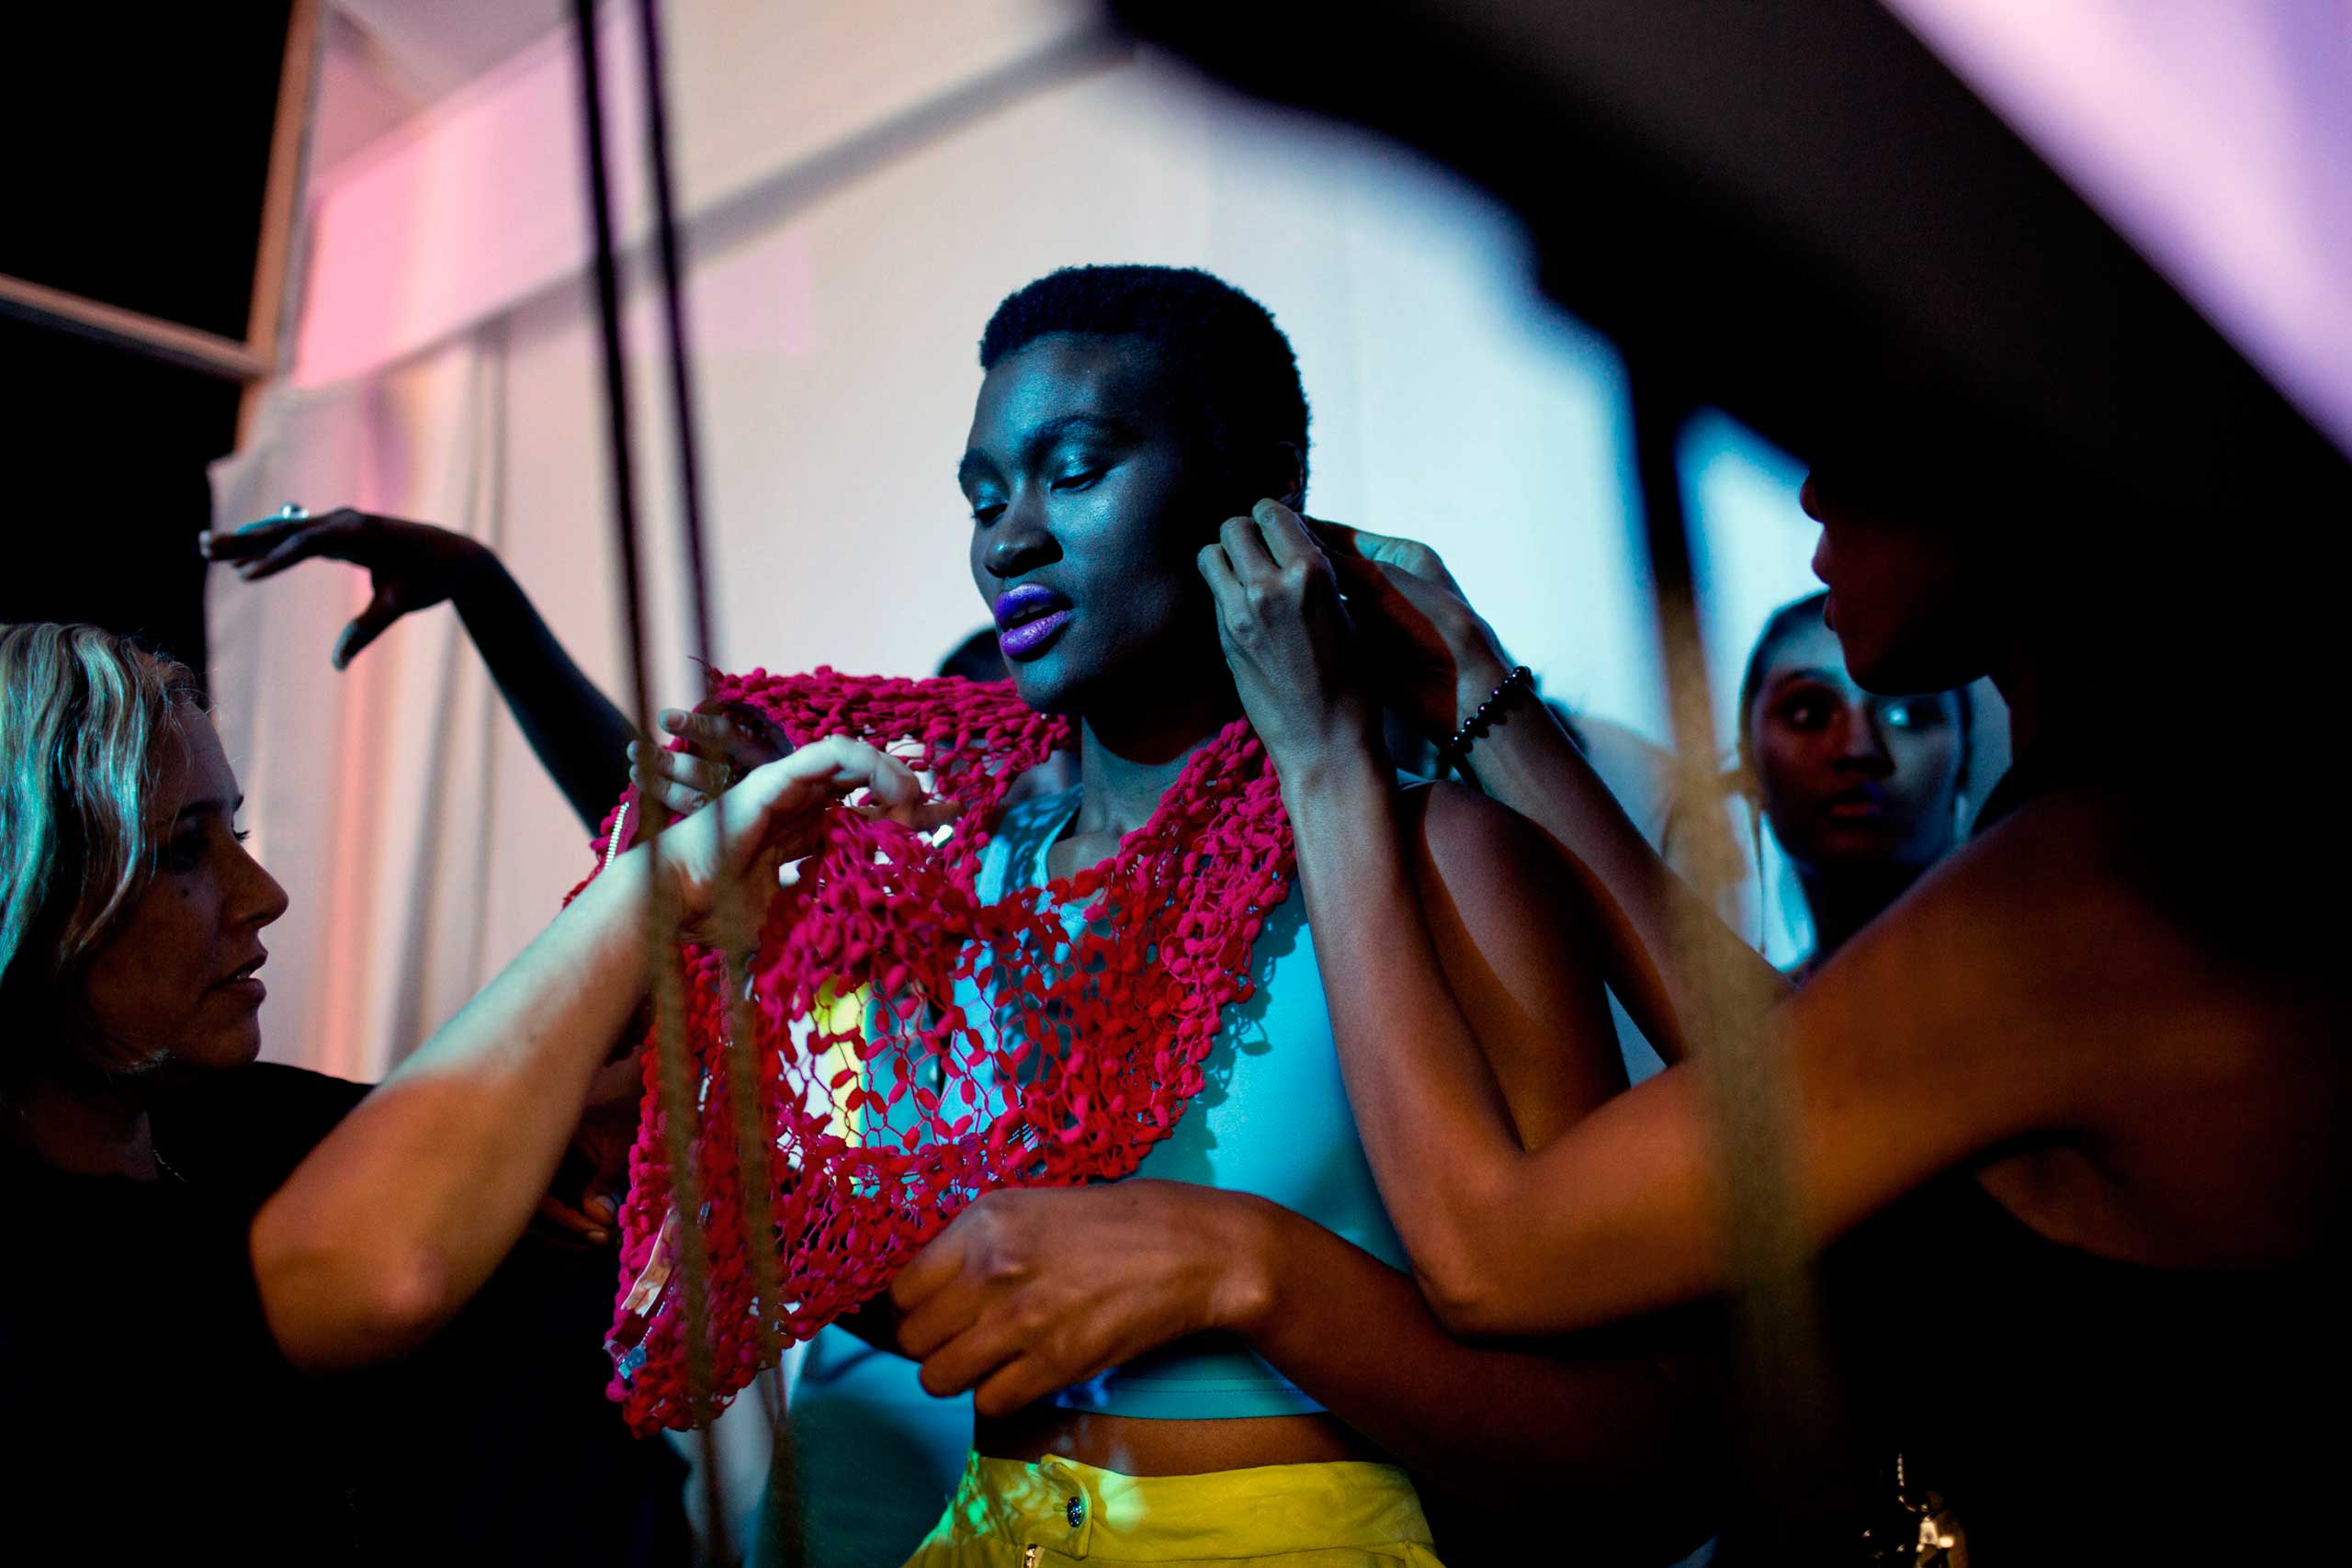 Models walking for the Zimbabwean designer label Intisaar waits backstage before a show at Mercedes Benz Africa fashion week Africa on Oct. 29, 2014 held at Melrose Arch in Johannesburg, South Africa.